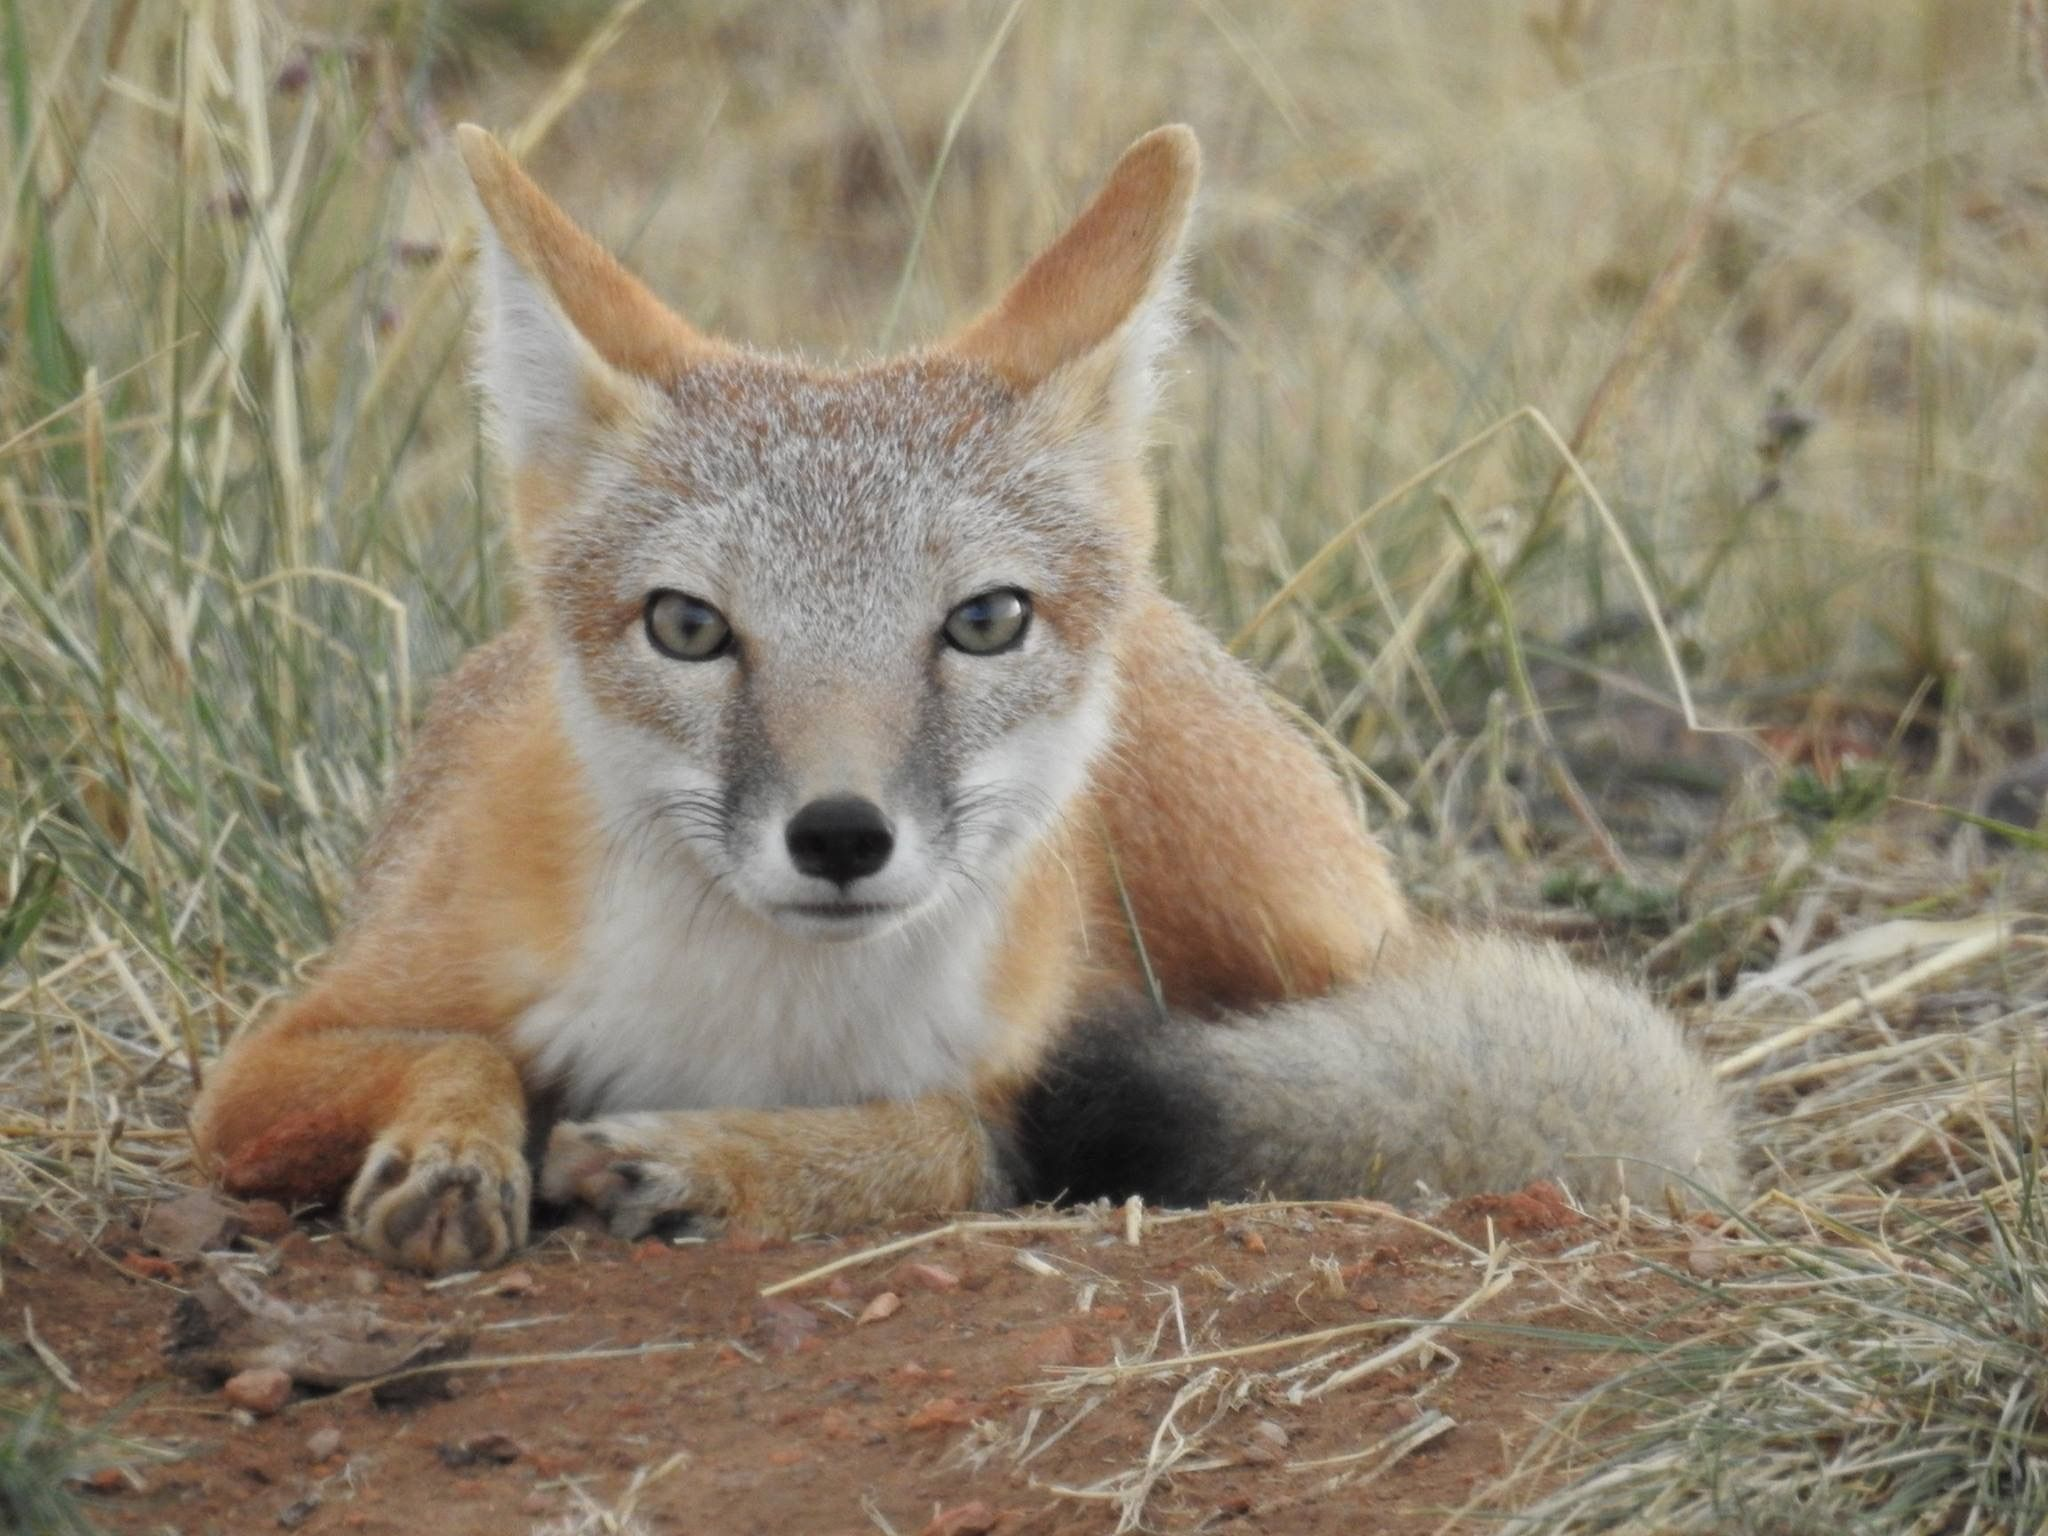 Tina Toth shared with us her terrific photo of a swift fox